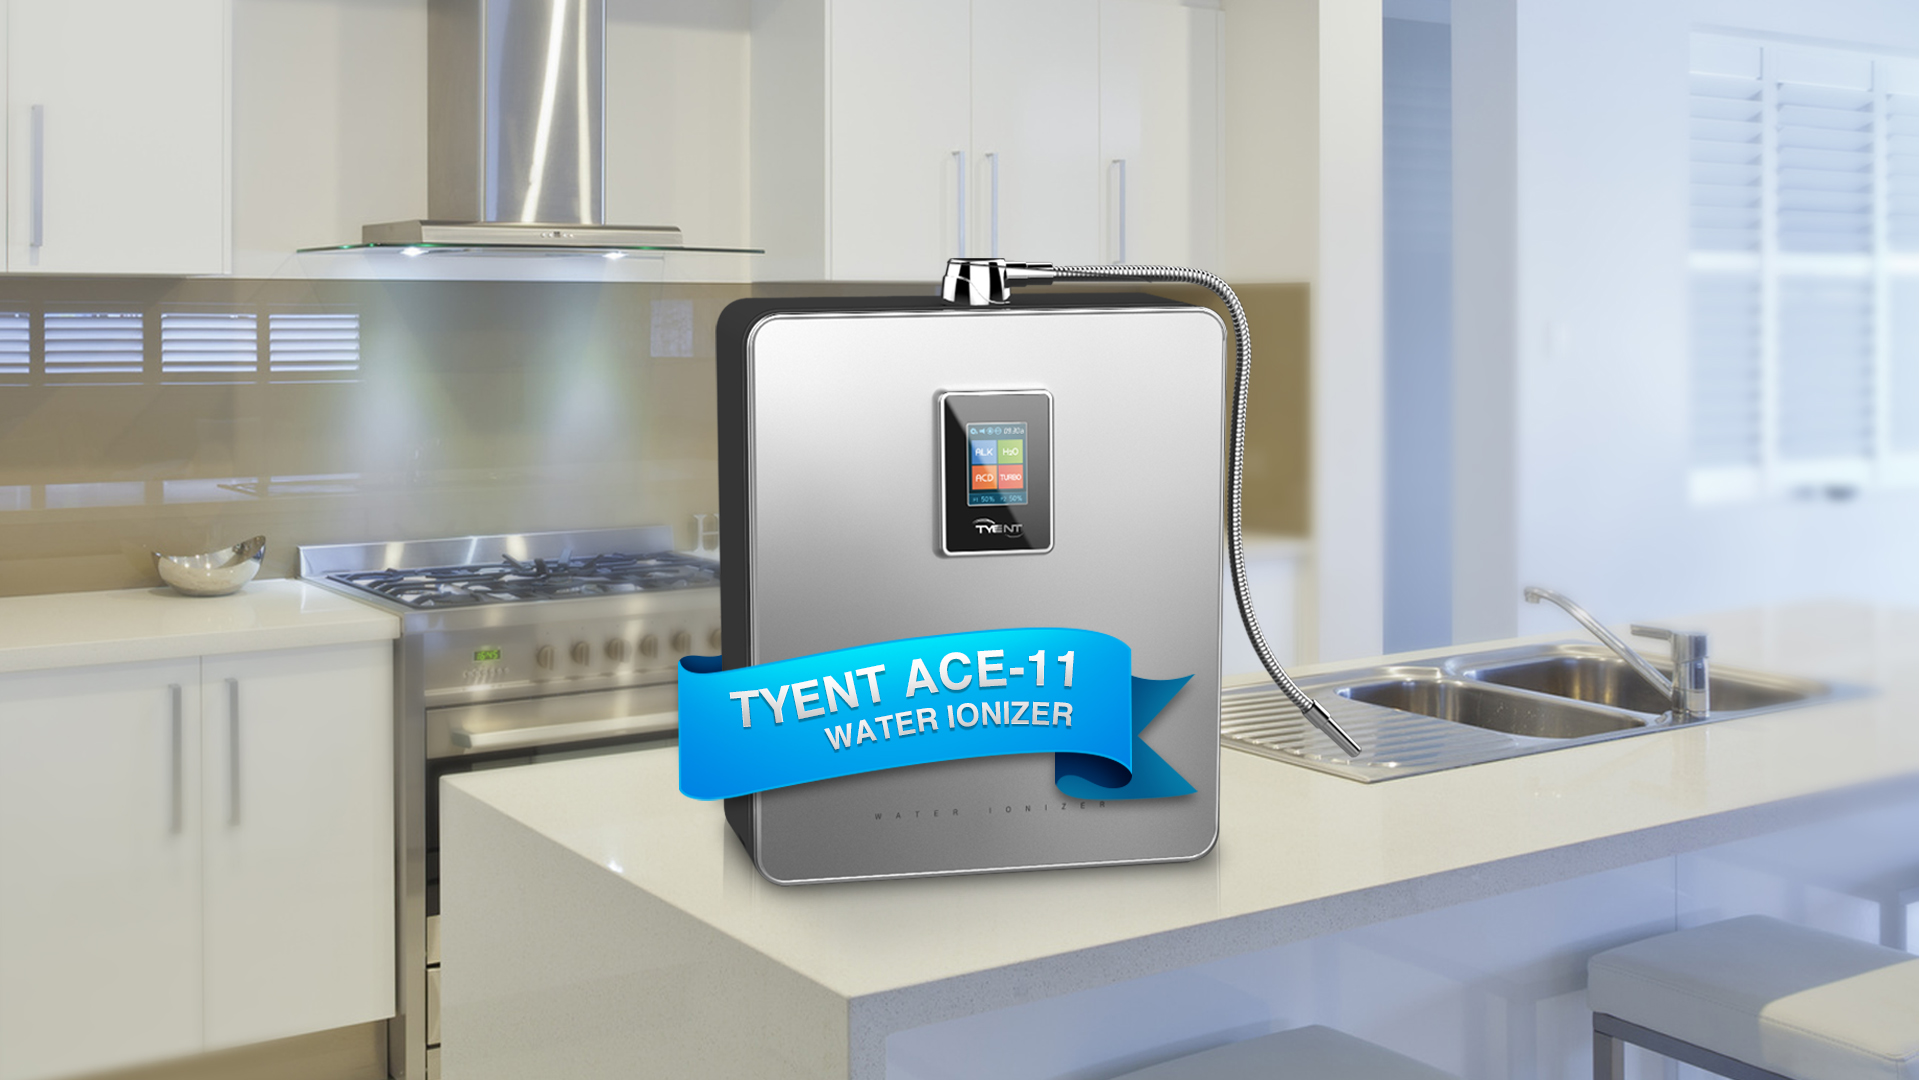 The Tyent Ace-11 water ionizer. Hydrogen water has never looked so good.